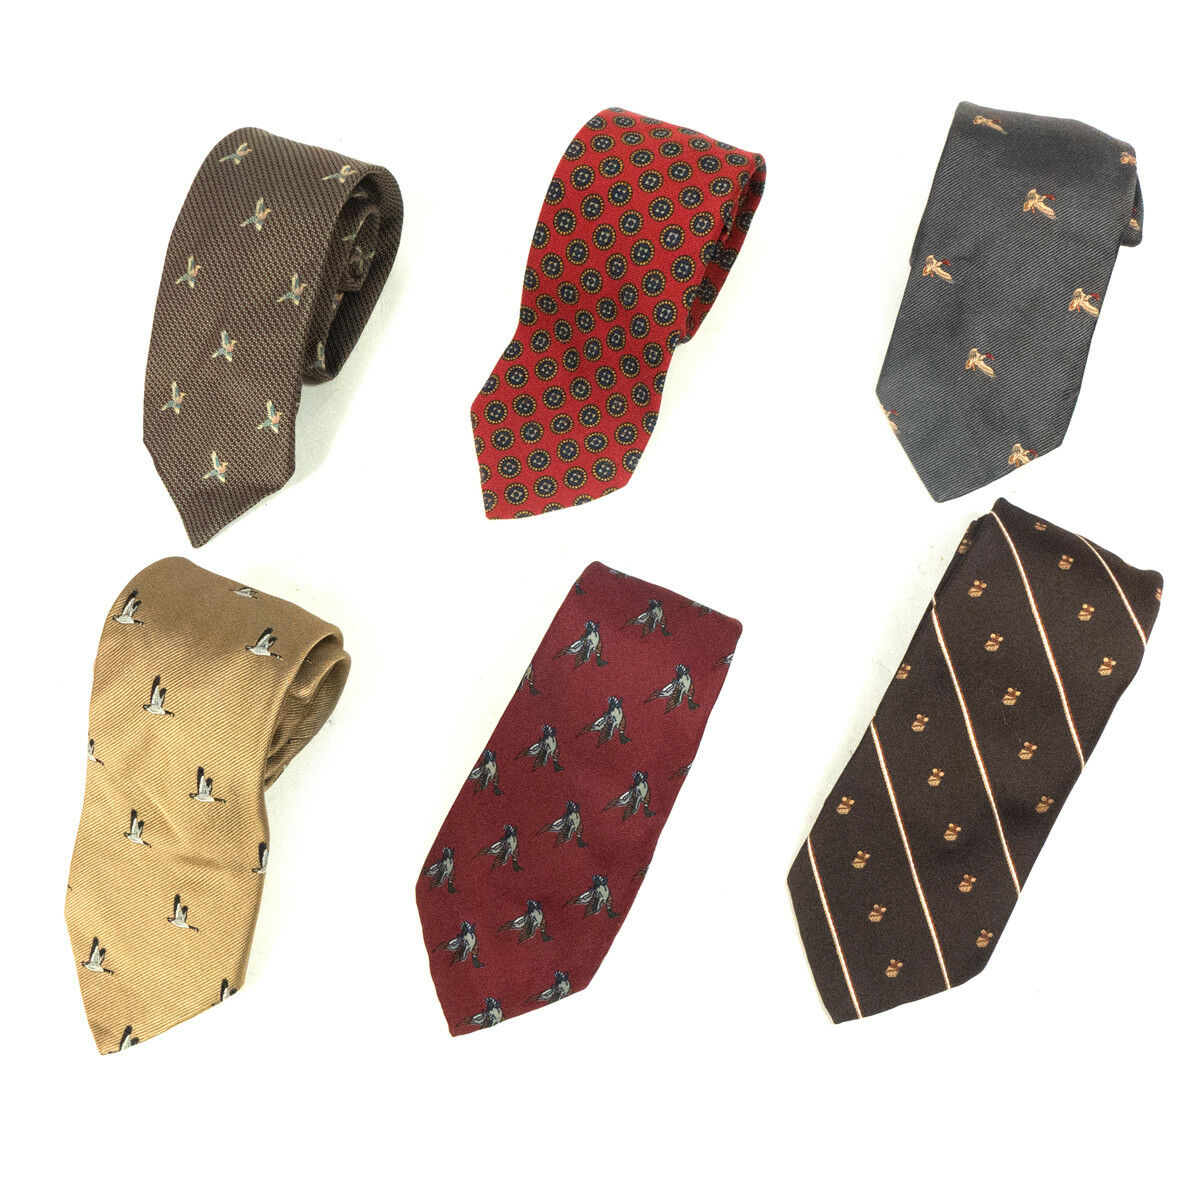 #12 Mixed Lot of 6 Vintage Men's Dresswear Color, Mixed Patterned Neck Ties